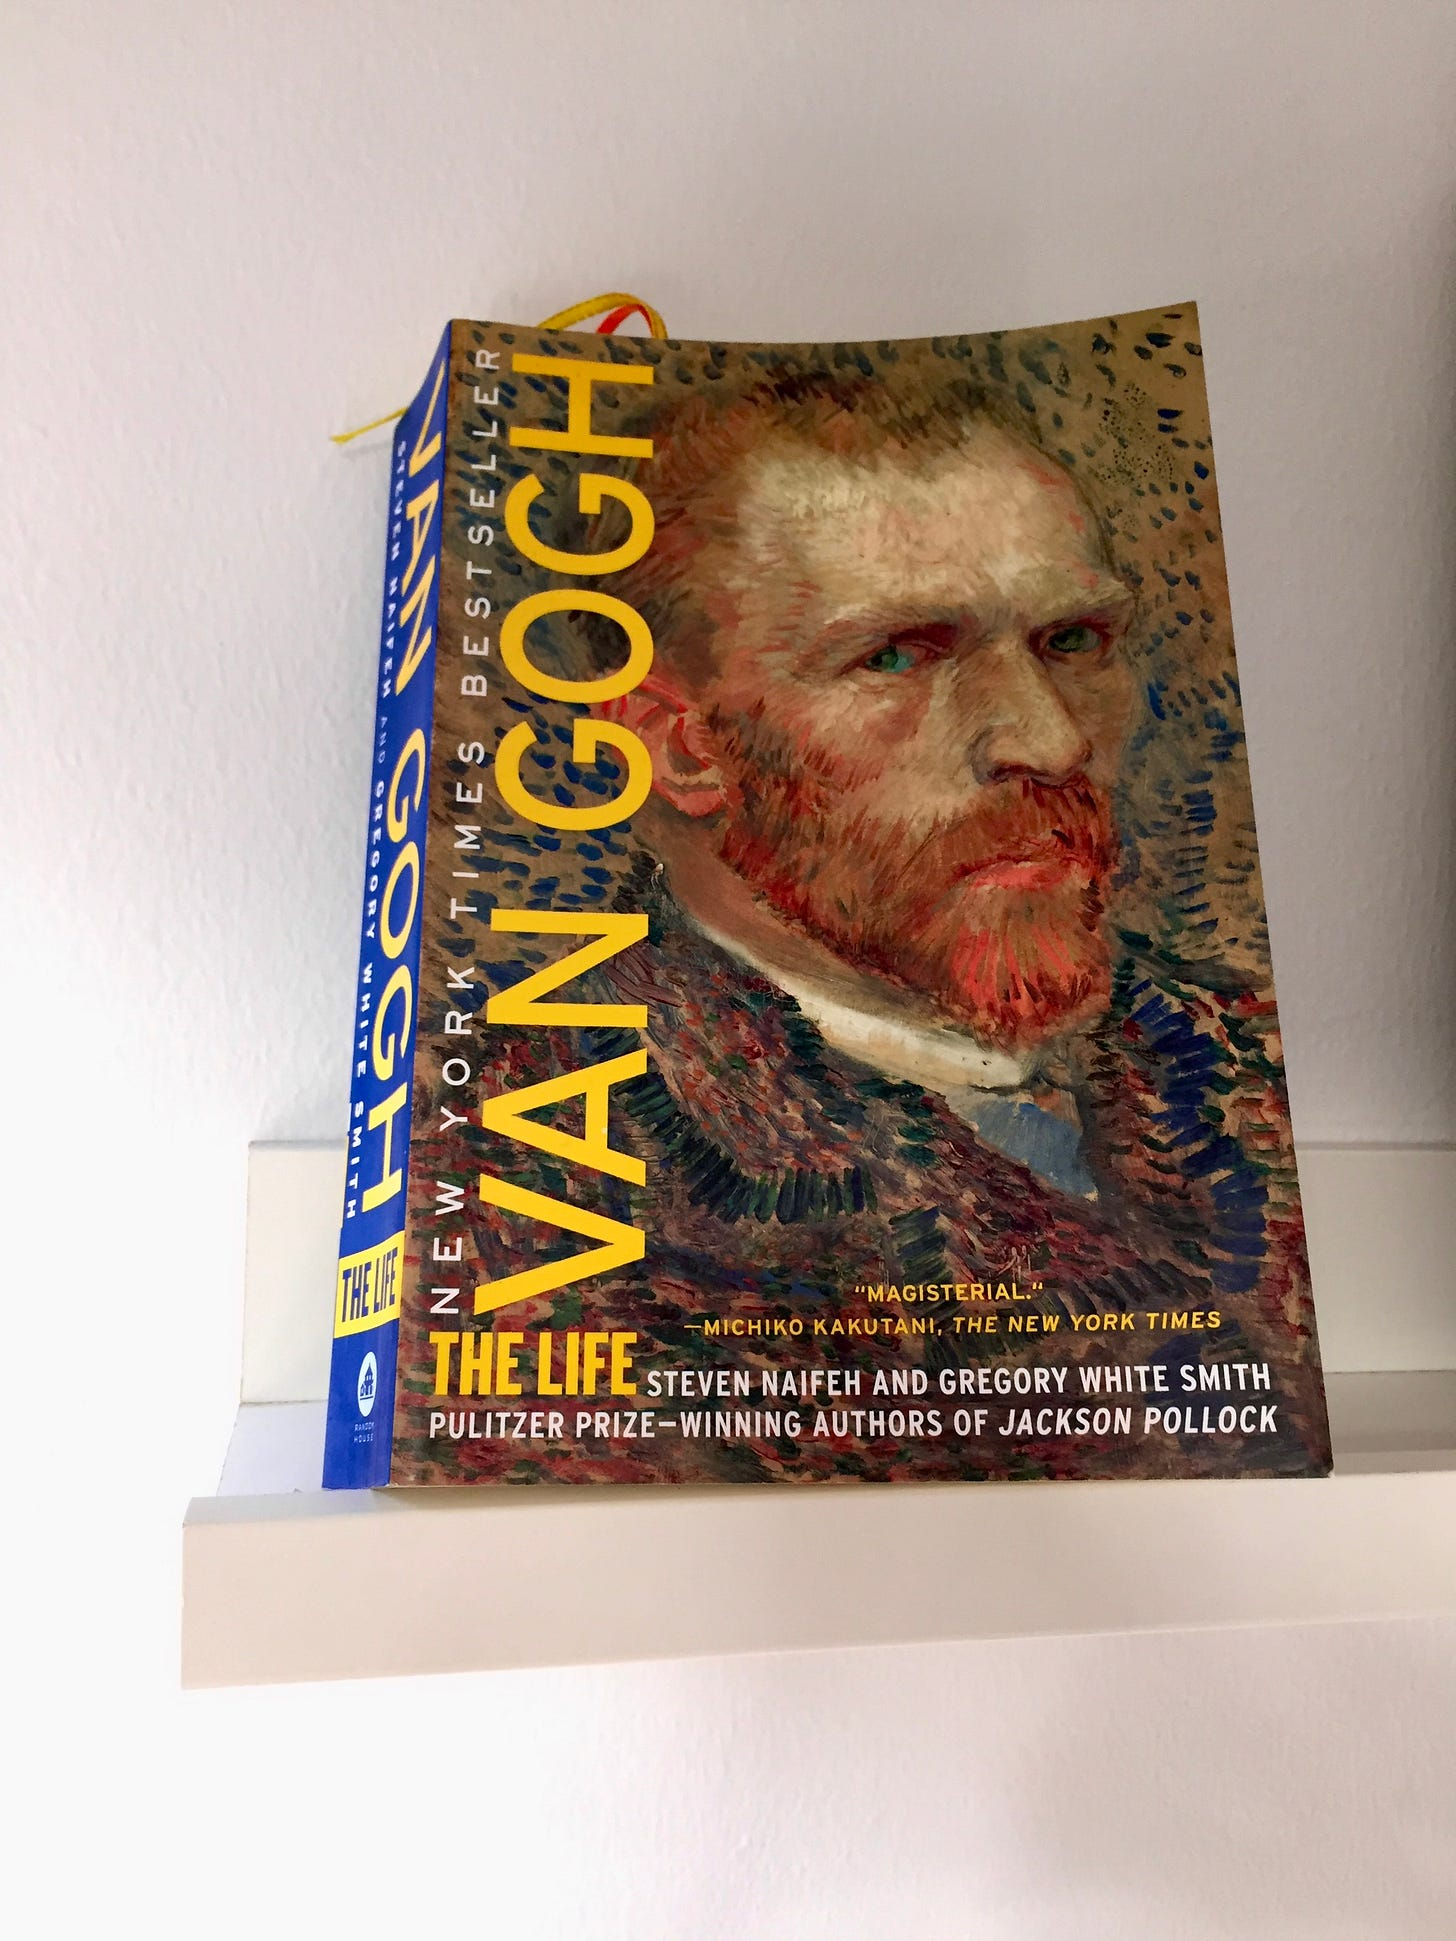 Photo of the book, Van Gogh, The Life by Steven Naifeh and Gregory White Smith. The book cover showed a self-portrait of Vincent van Gogh, his piercing blue eyes seems to be looking intensely at the viewer. He has ginger reddish coloured beard, and his hairline has started to recede. He appeared to be wearing a jacket.